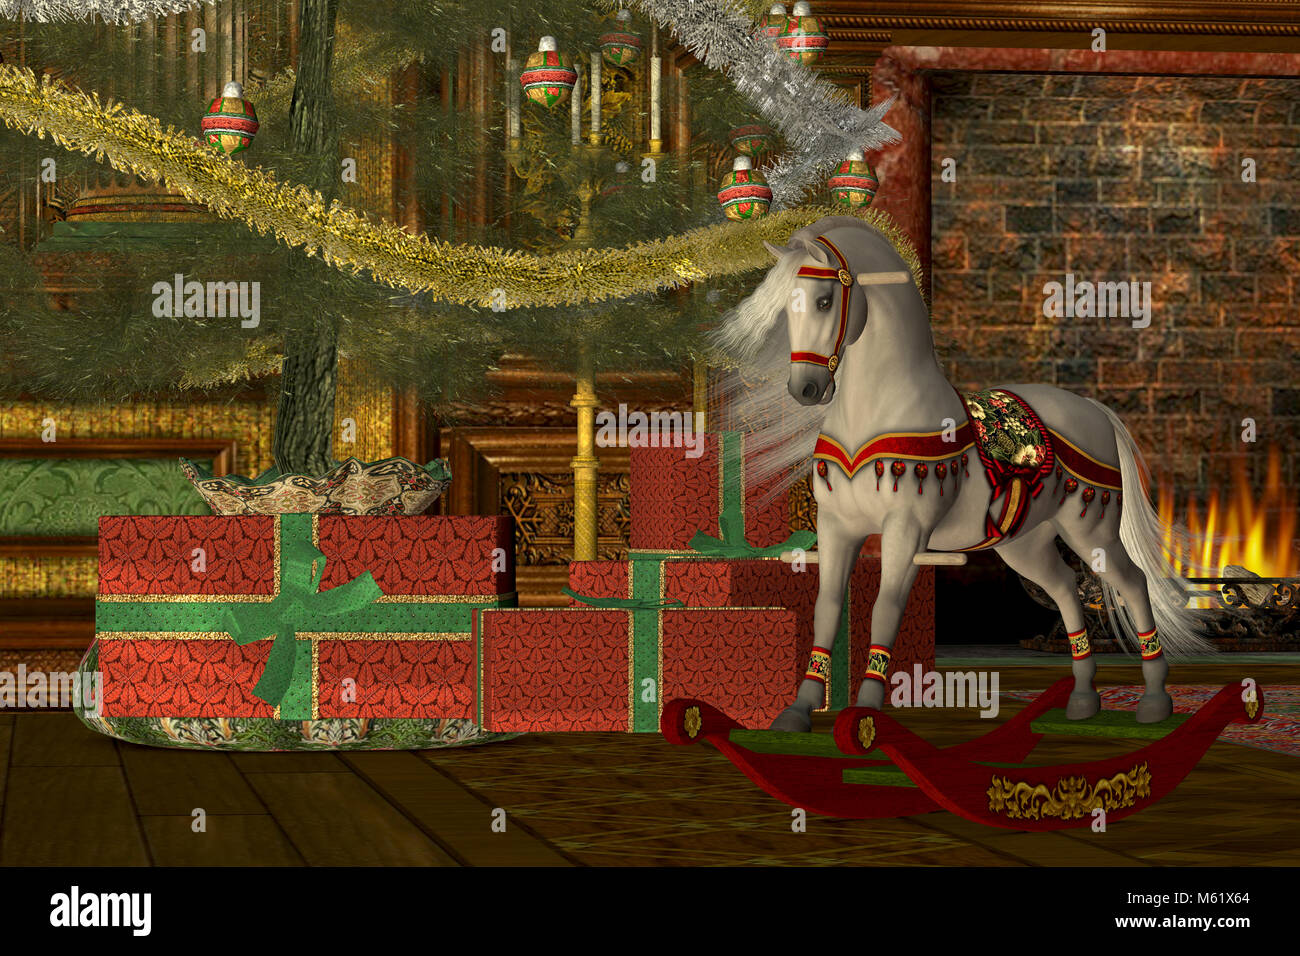 A rocking horse awaits its new rider on Christmas morning under the decorated tree in front of a Victorian fireplace. - Stock Image